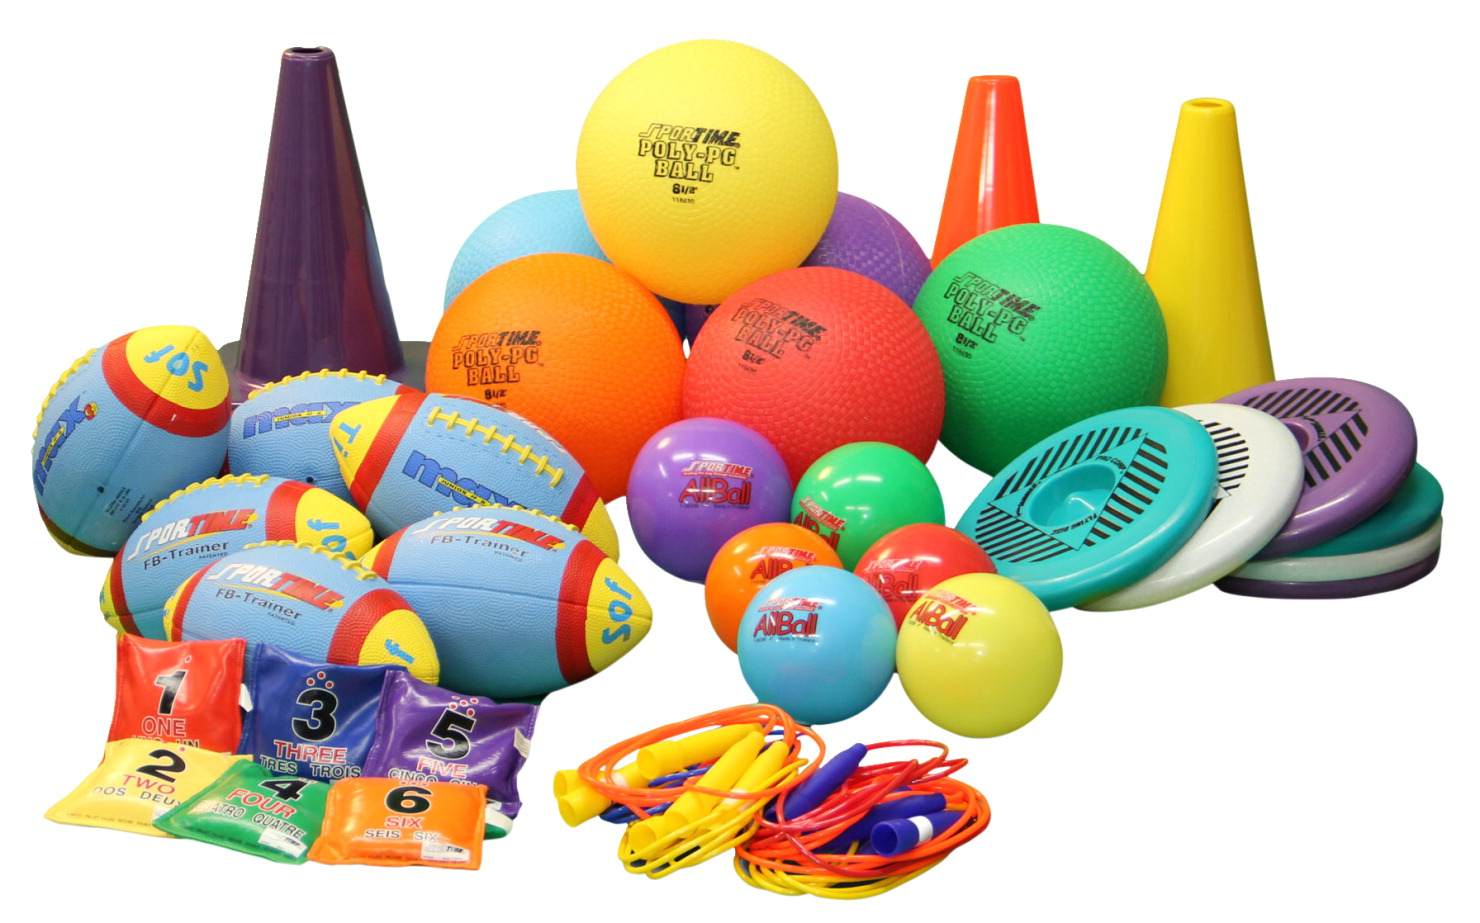 Sportime PE Starter Pack, Grades 3 to 6